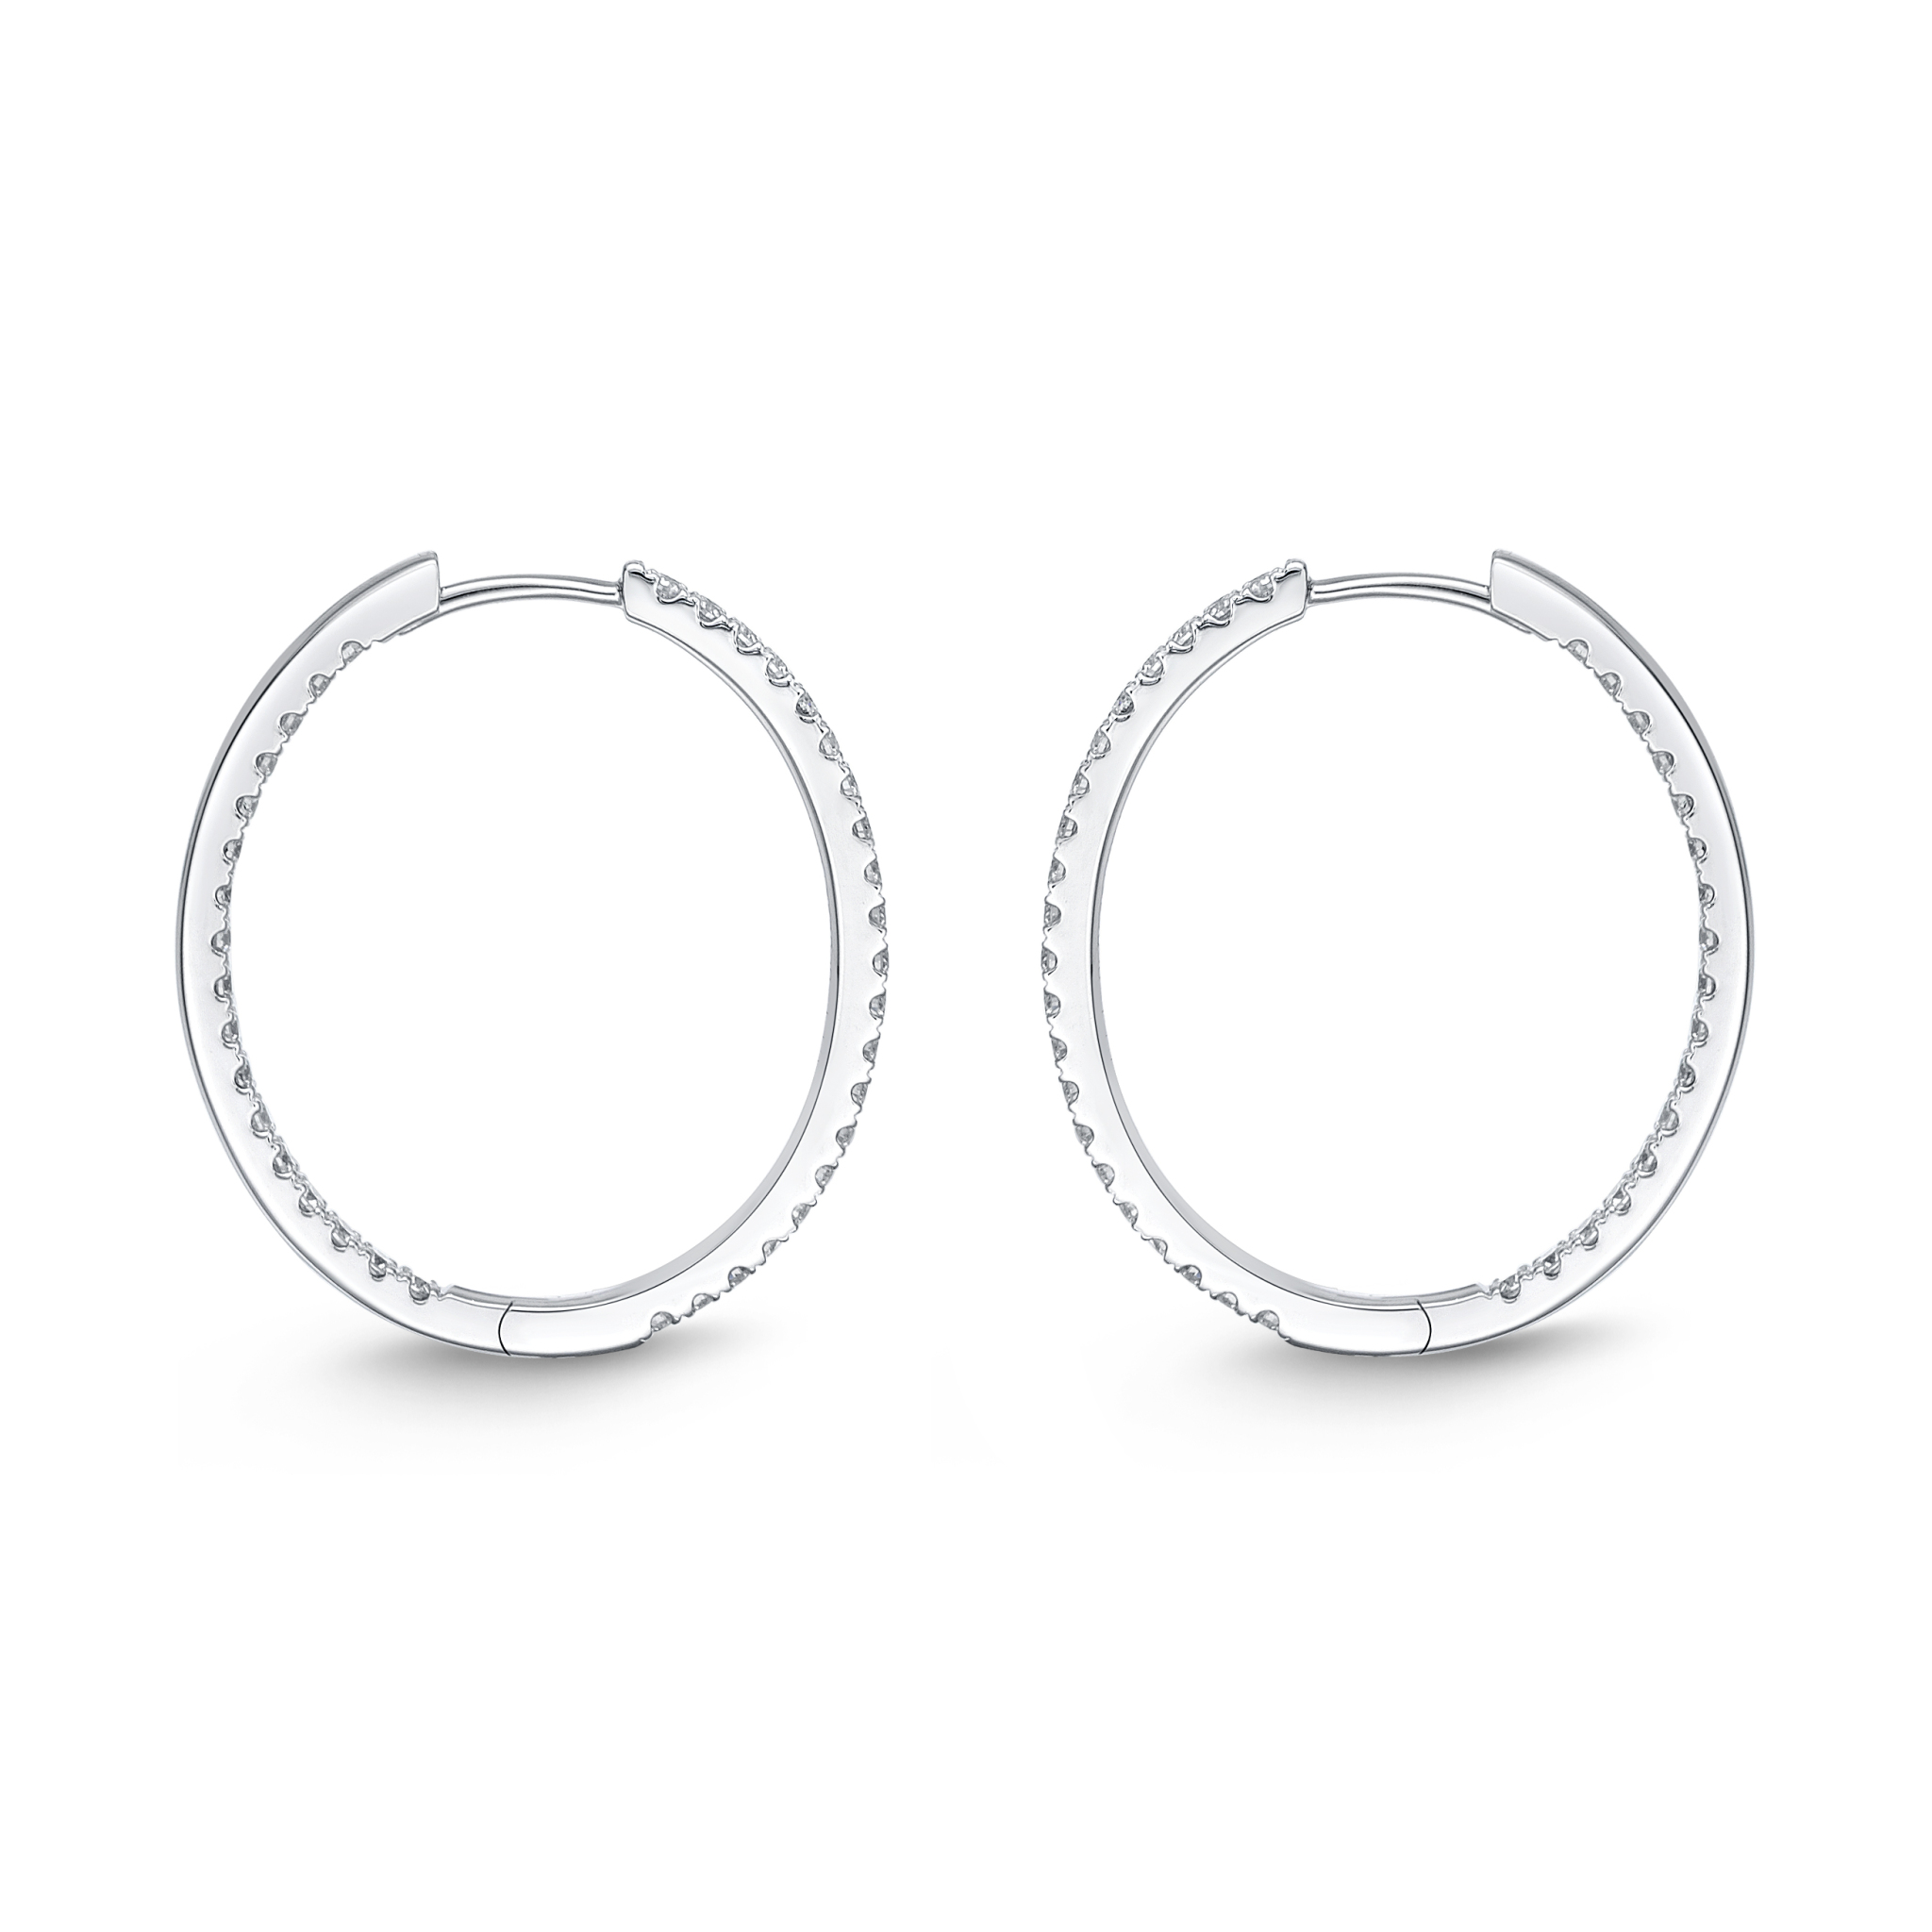 Memoire 18ct White Gold 0.70 Carat Diamond Classic Oval Hoop Earrings 19X23mm